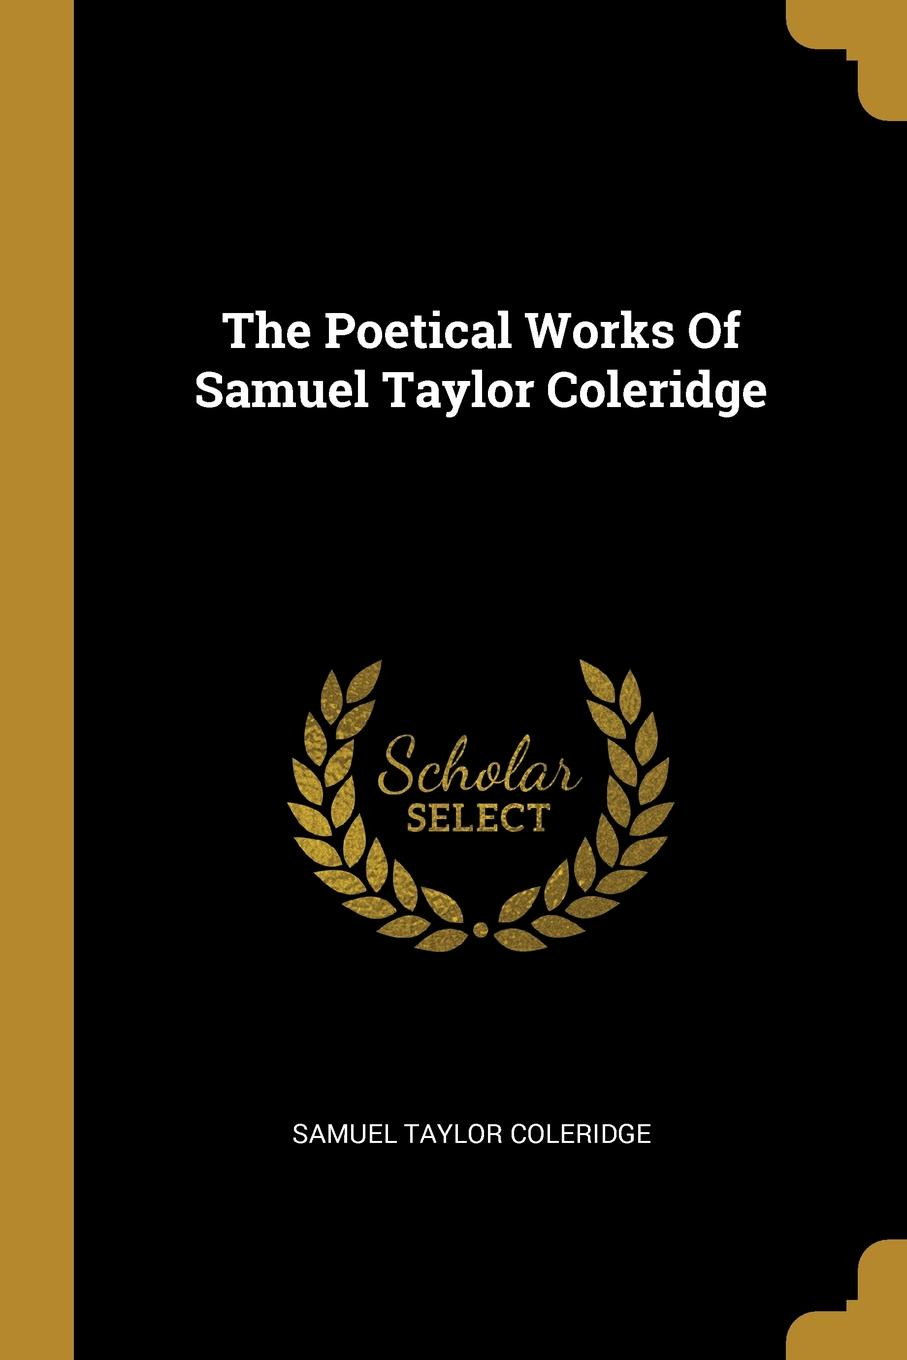 Samuel Taylor Coleridge. The Poetical Works Of Samuel Taylor Coleridge